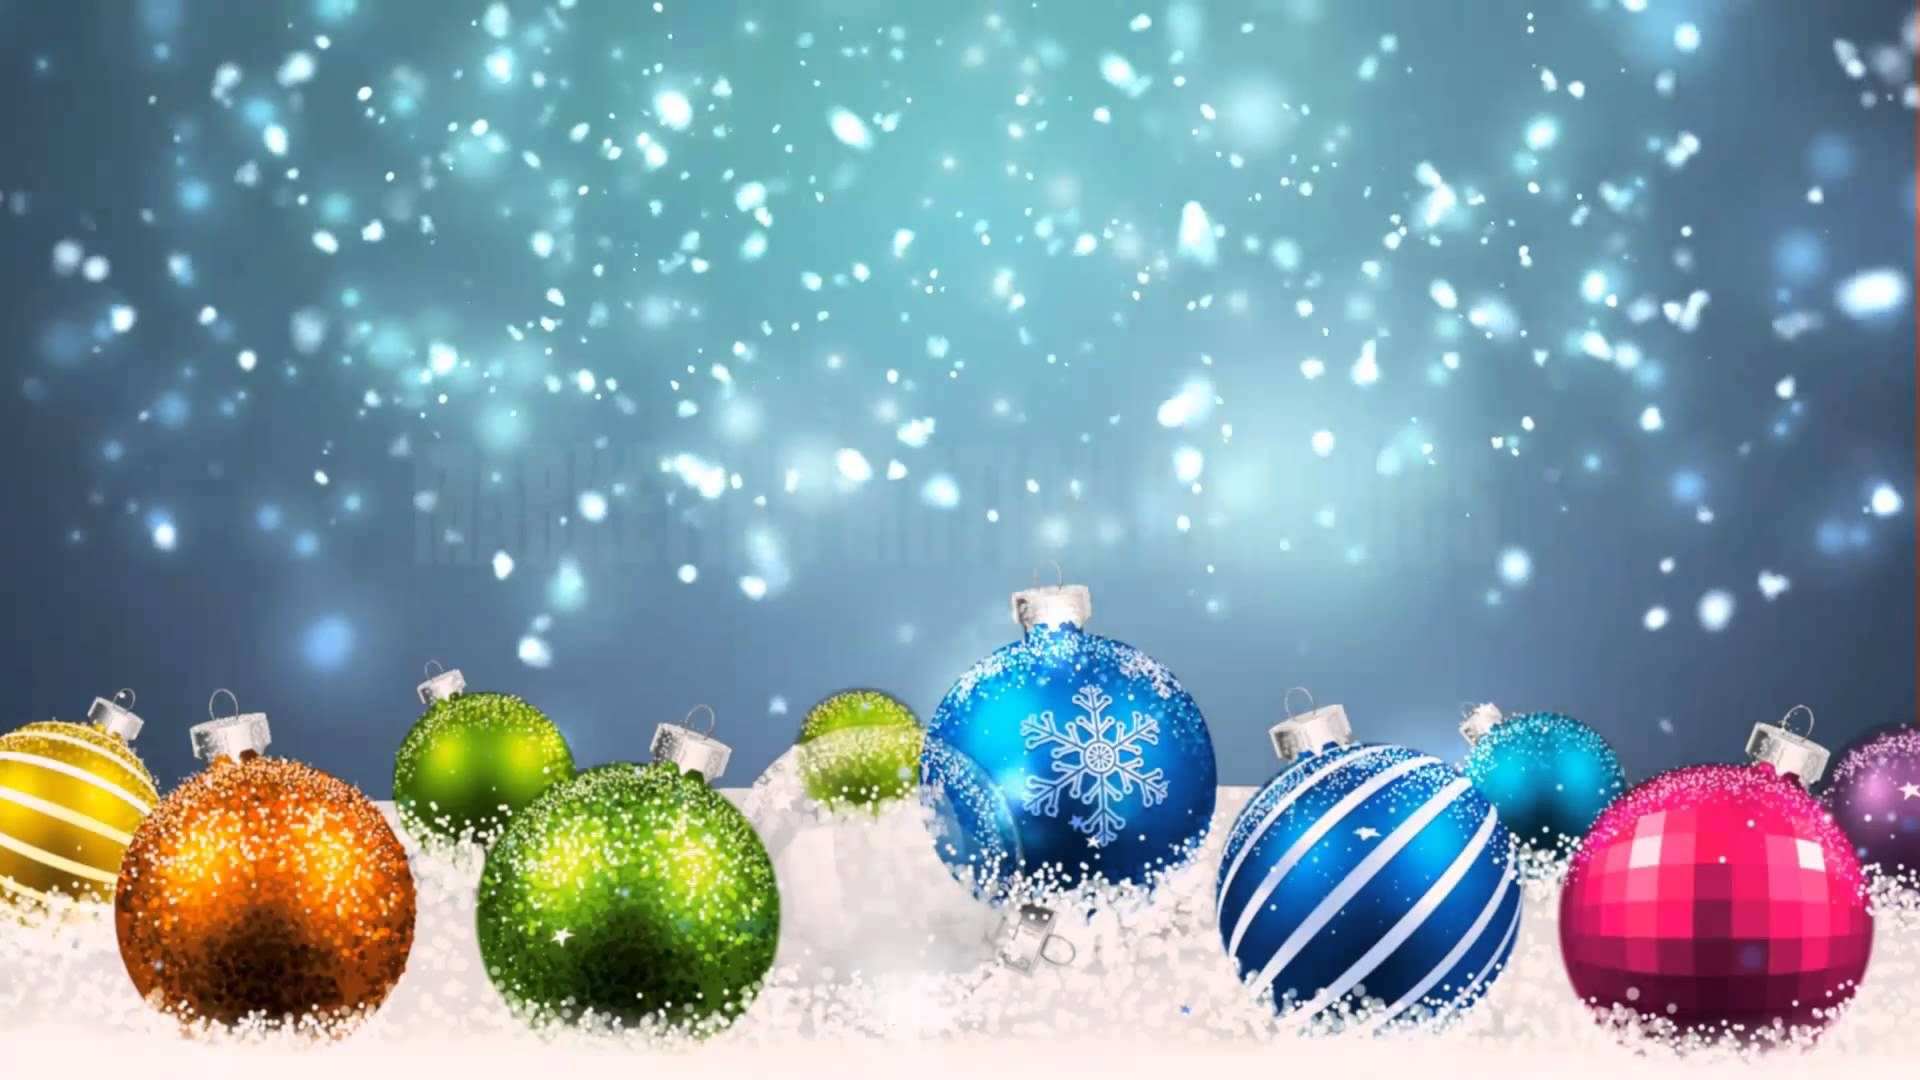 Winter-Christmas Motion Backgrounds - YouTube